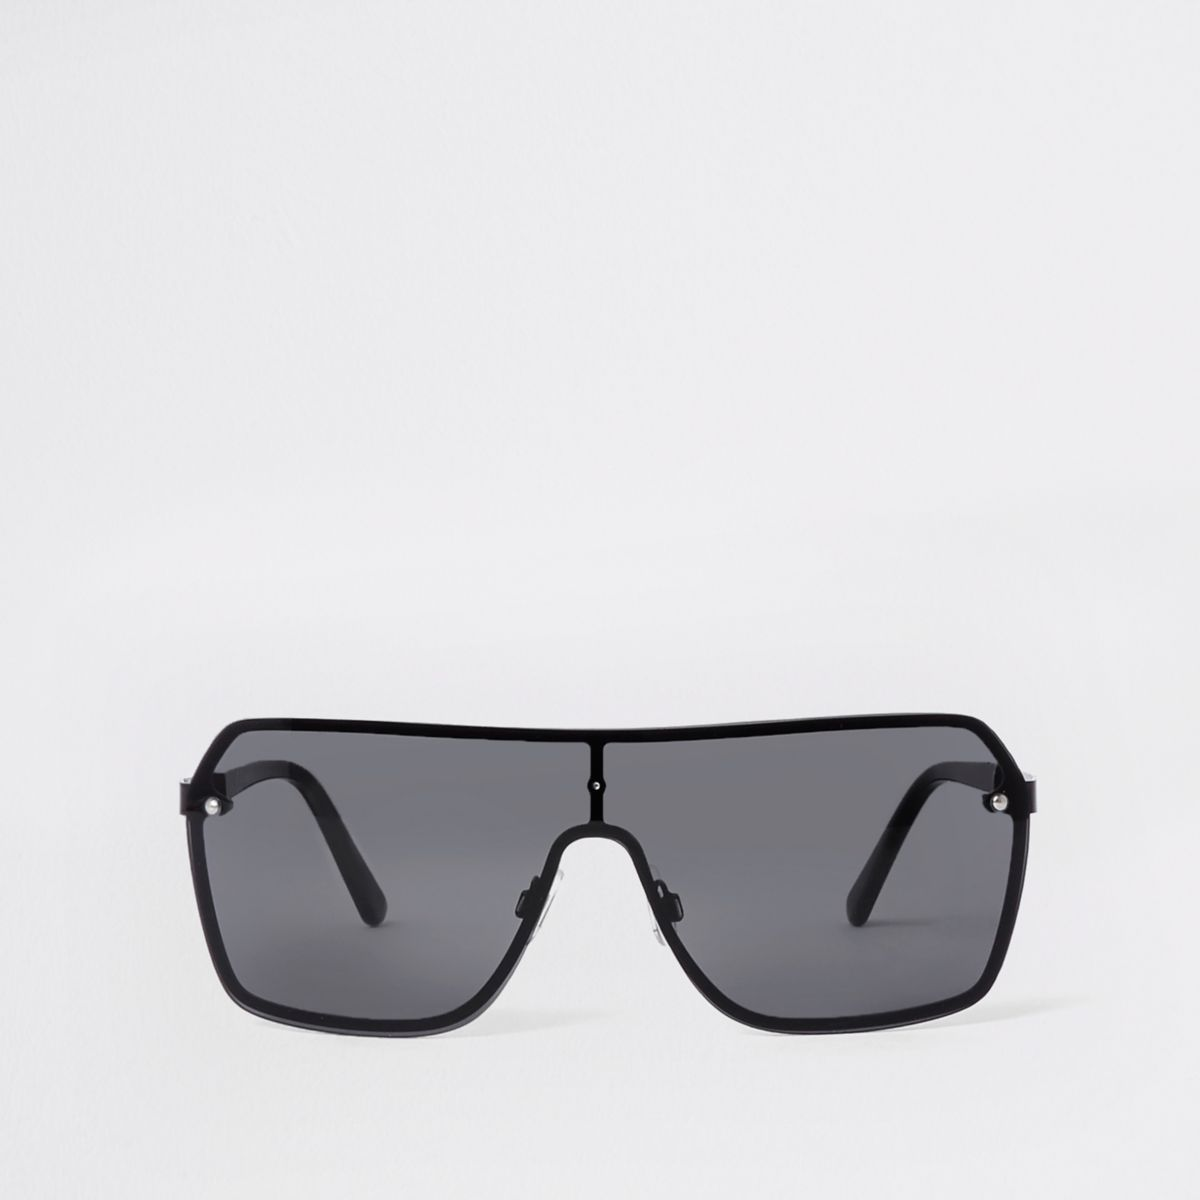 Black visor aviator sunglasses